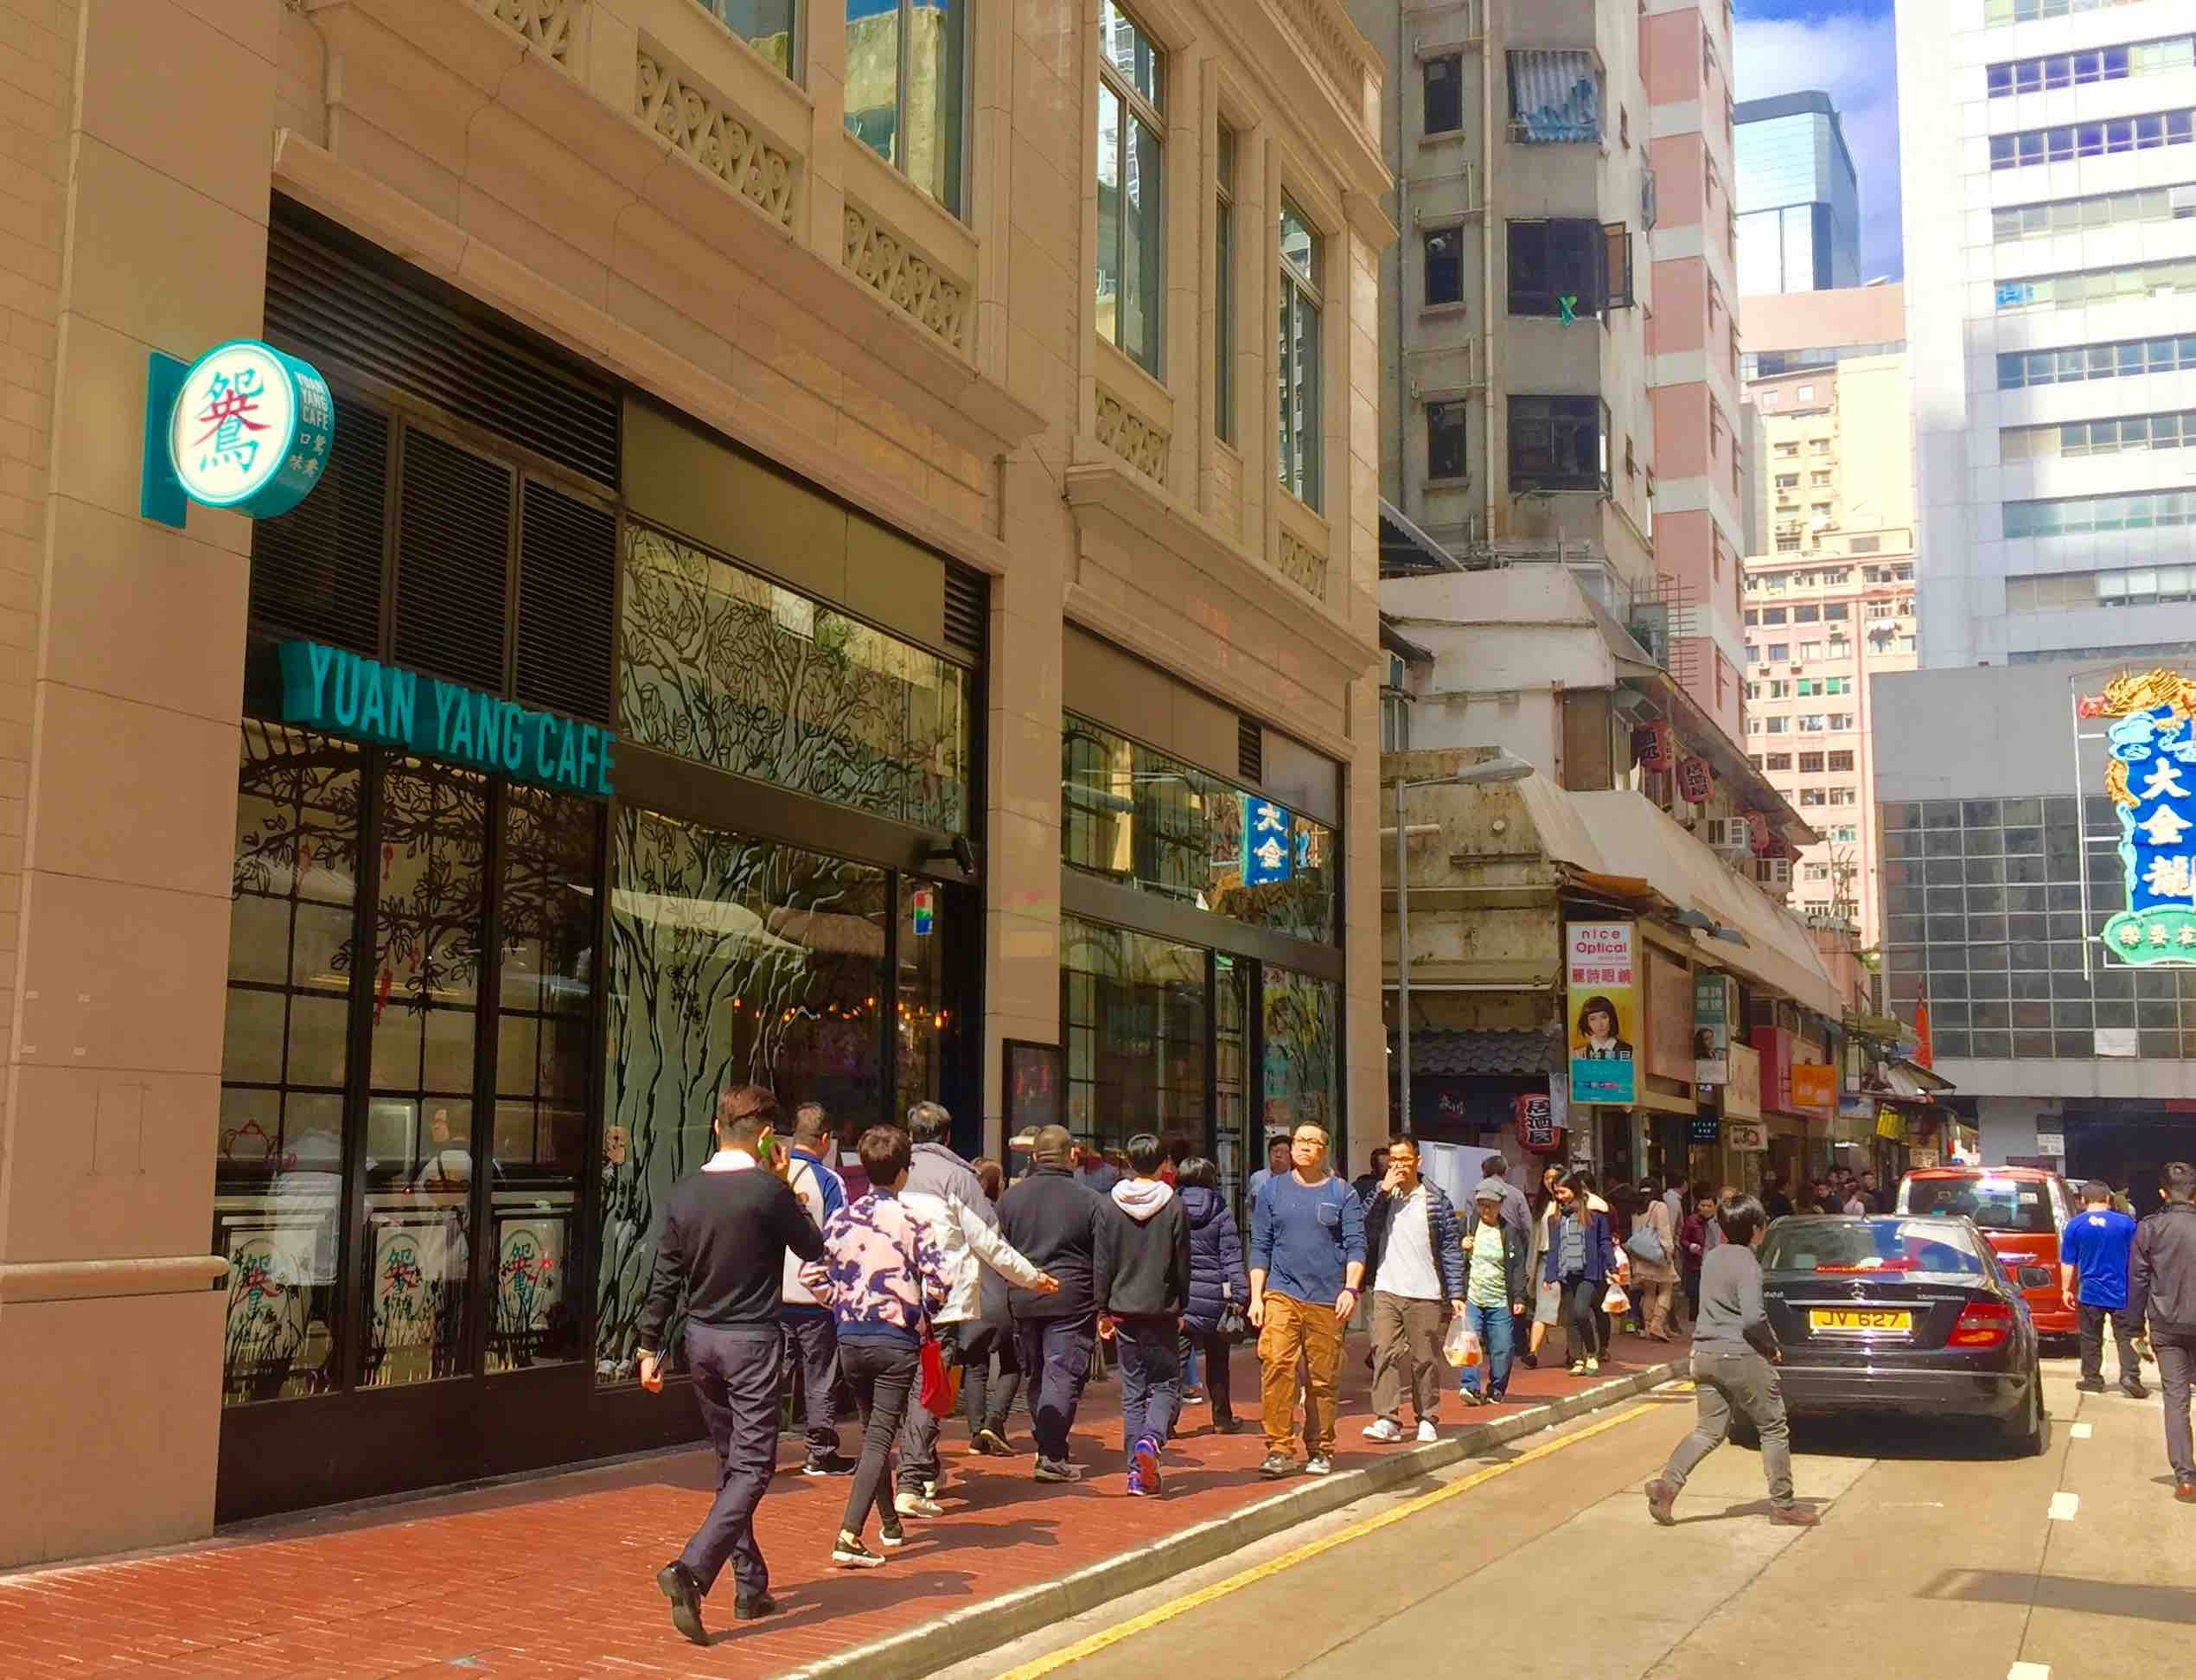 Johnston Road around-office crowds for restaurants and bars